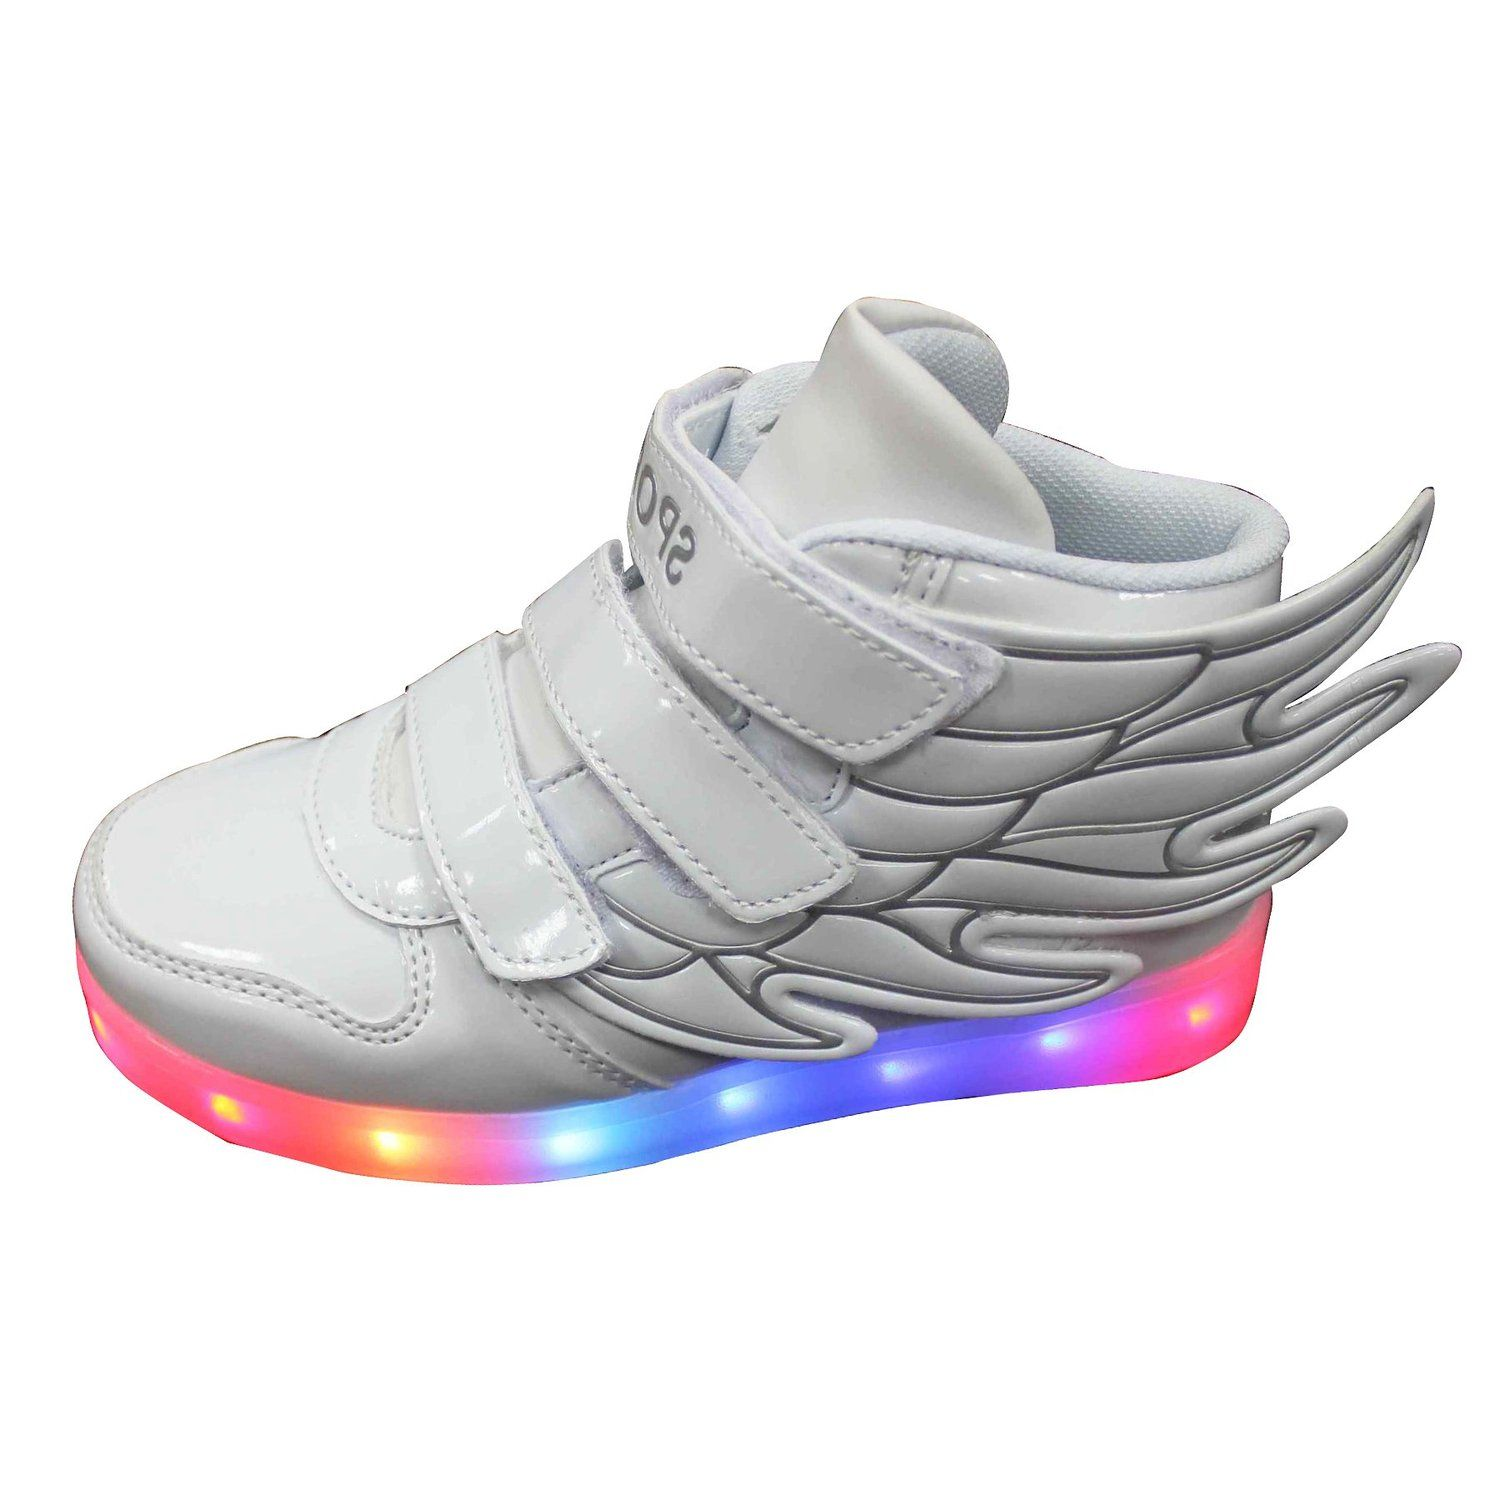 Gaorui Women LED Light Sneaker White High Top Sport Shoes USB Charging Trainers